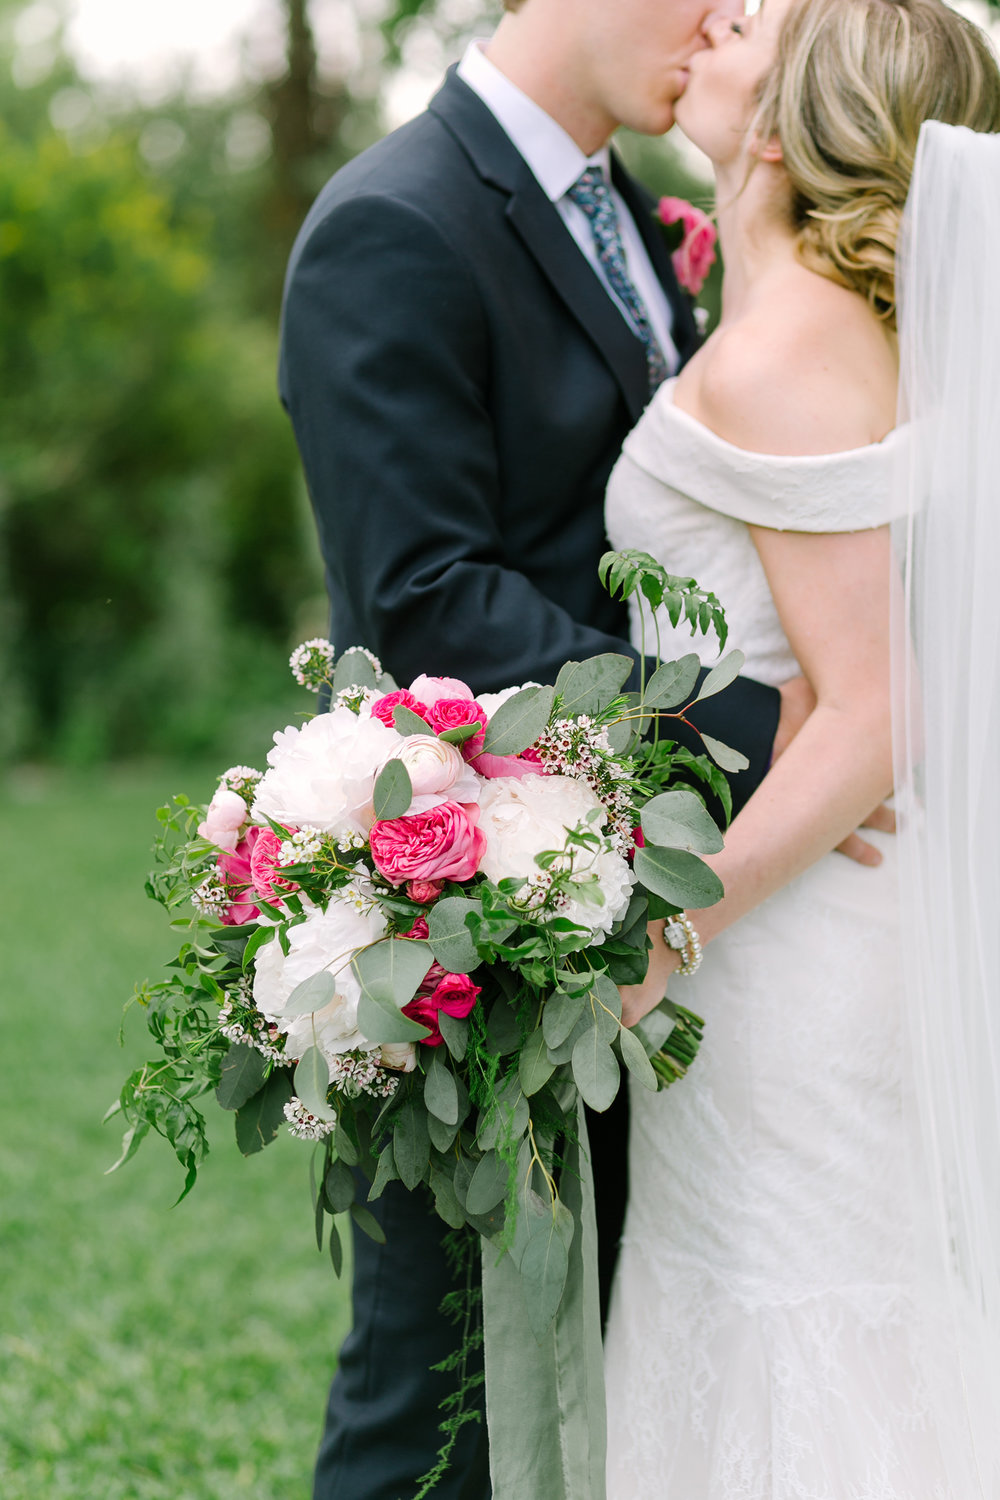 Austin_Wedding_Photographer_Kimberly_Brooke_Photographic_114.jpg